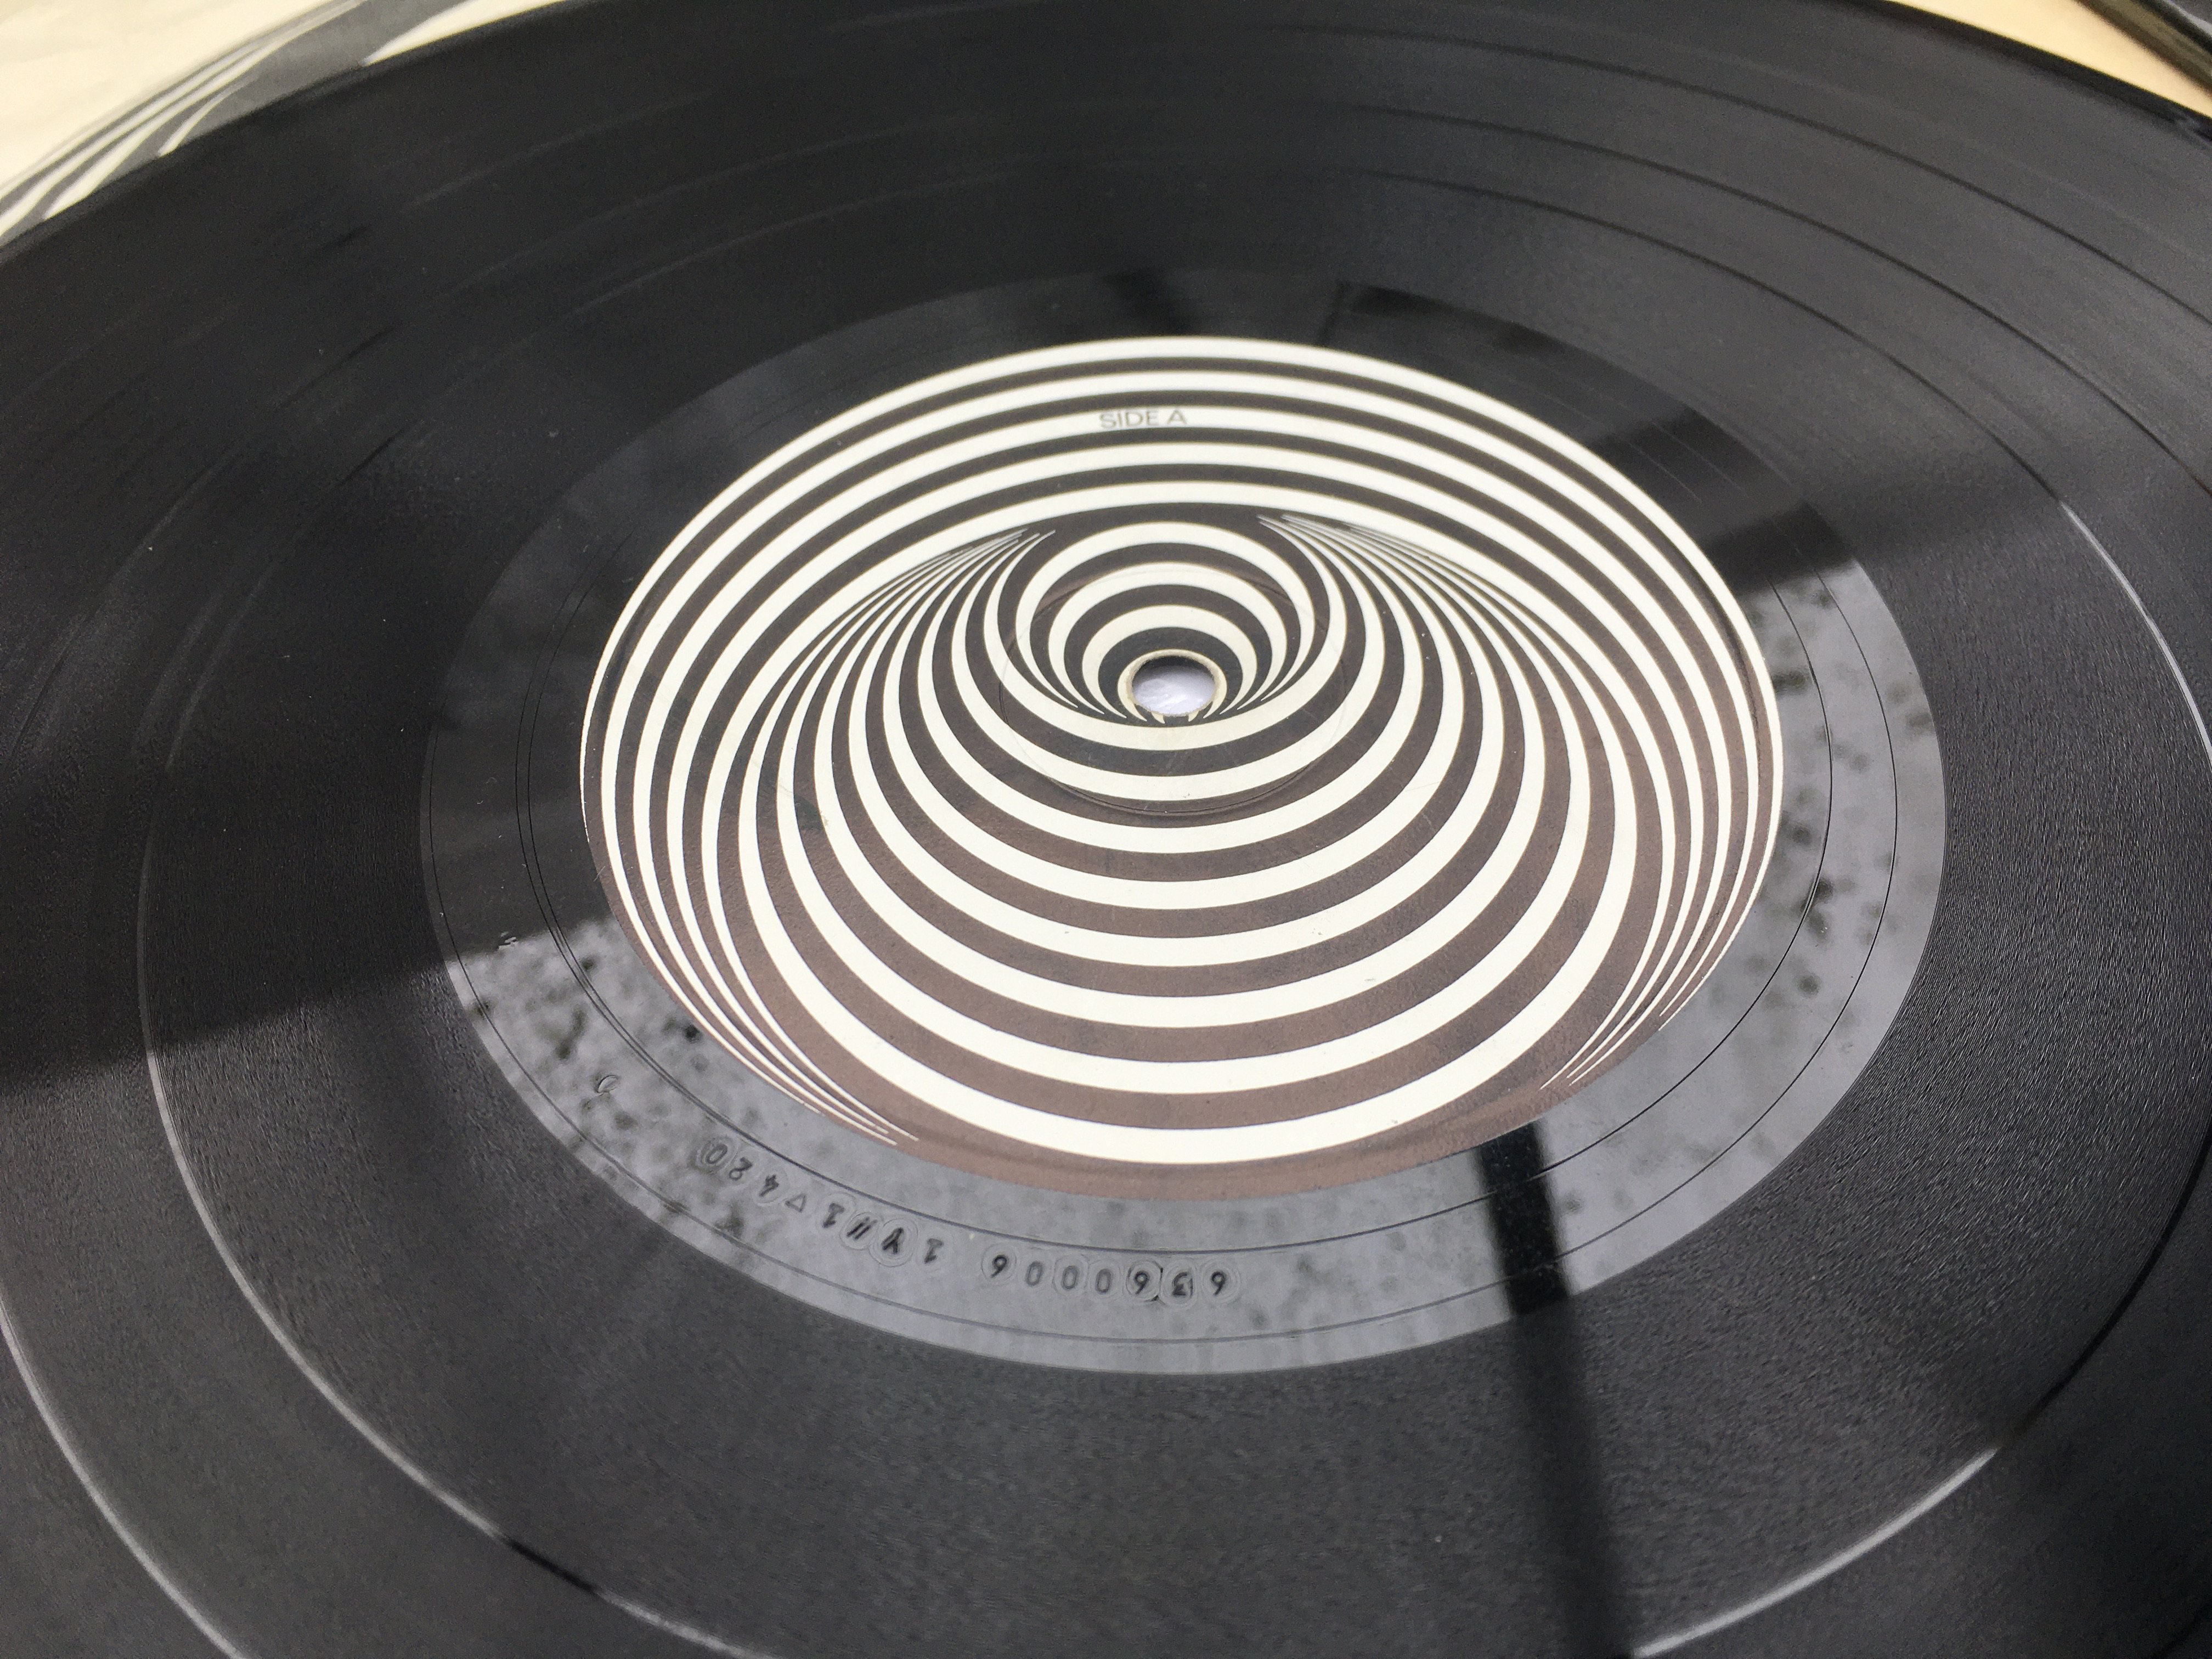 A first UK pressing of 'Very Eavy, Very Umble' by - Image 2 of 2